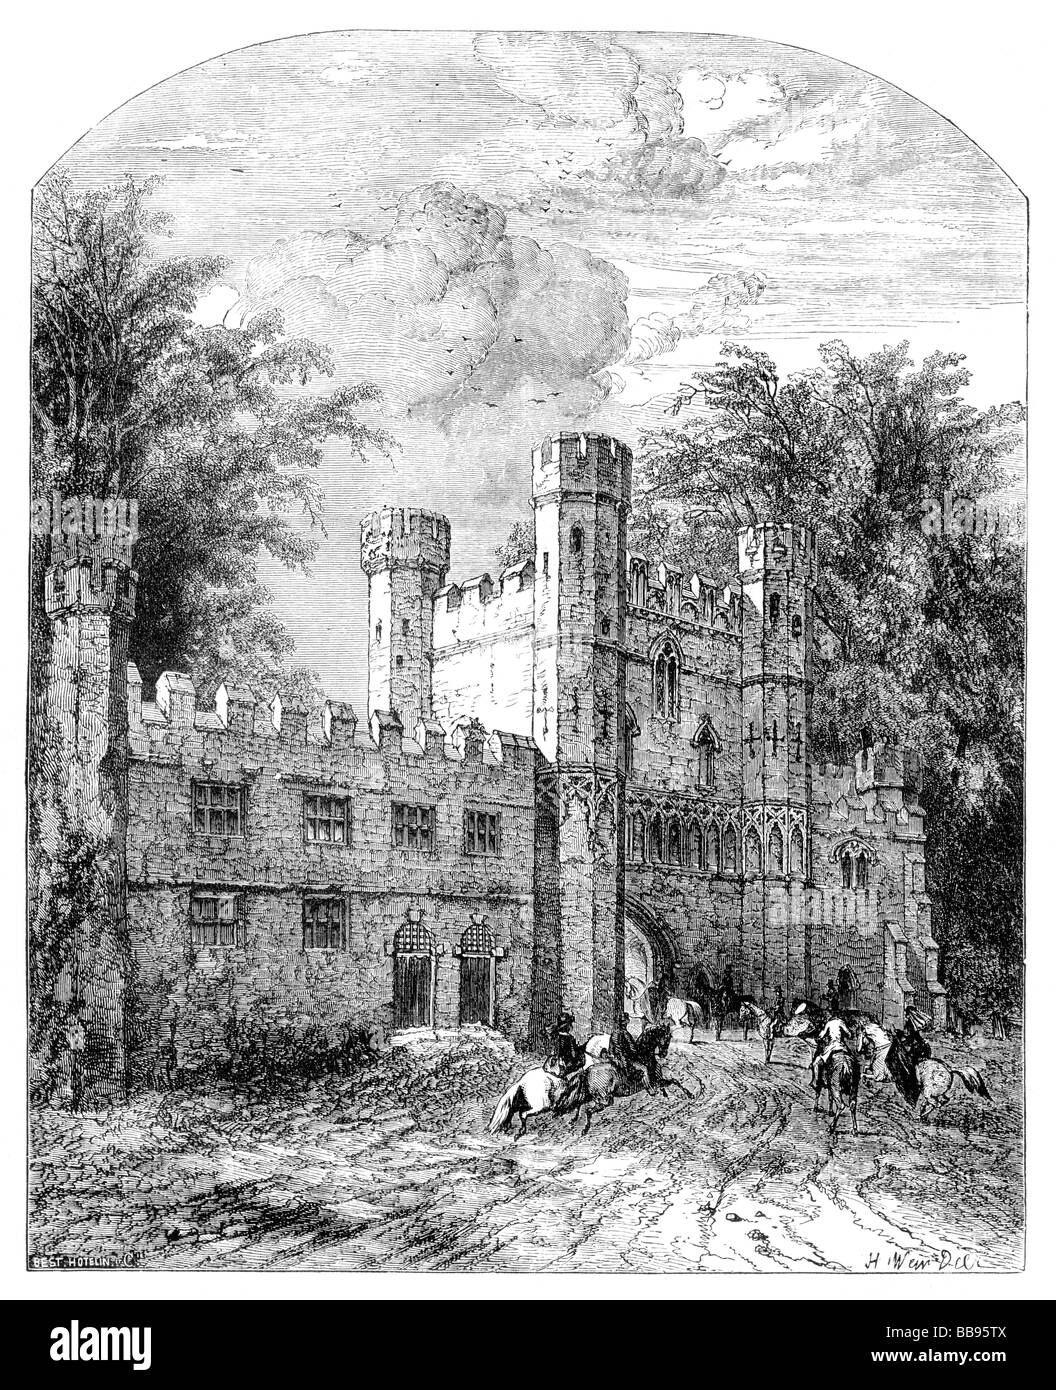 Illustration Battle Abbey as it may have appeared in the 19th Century Stock Photo